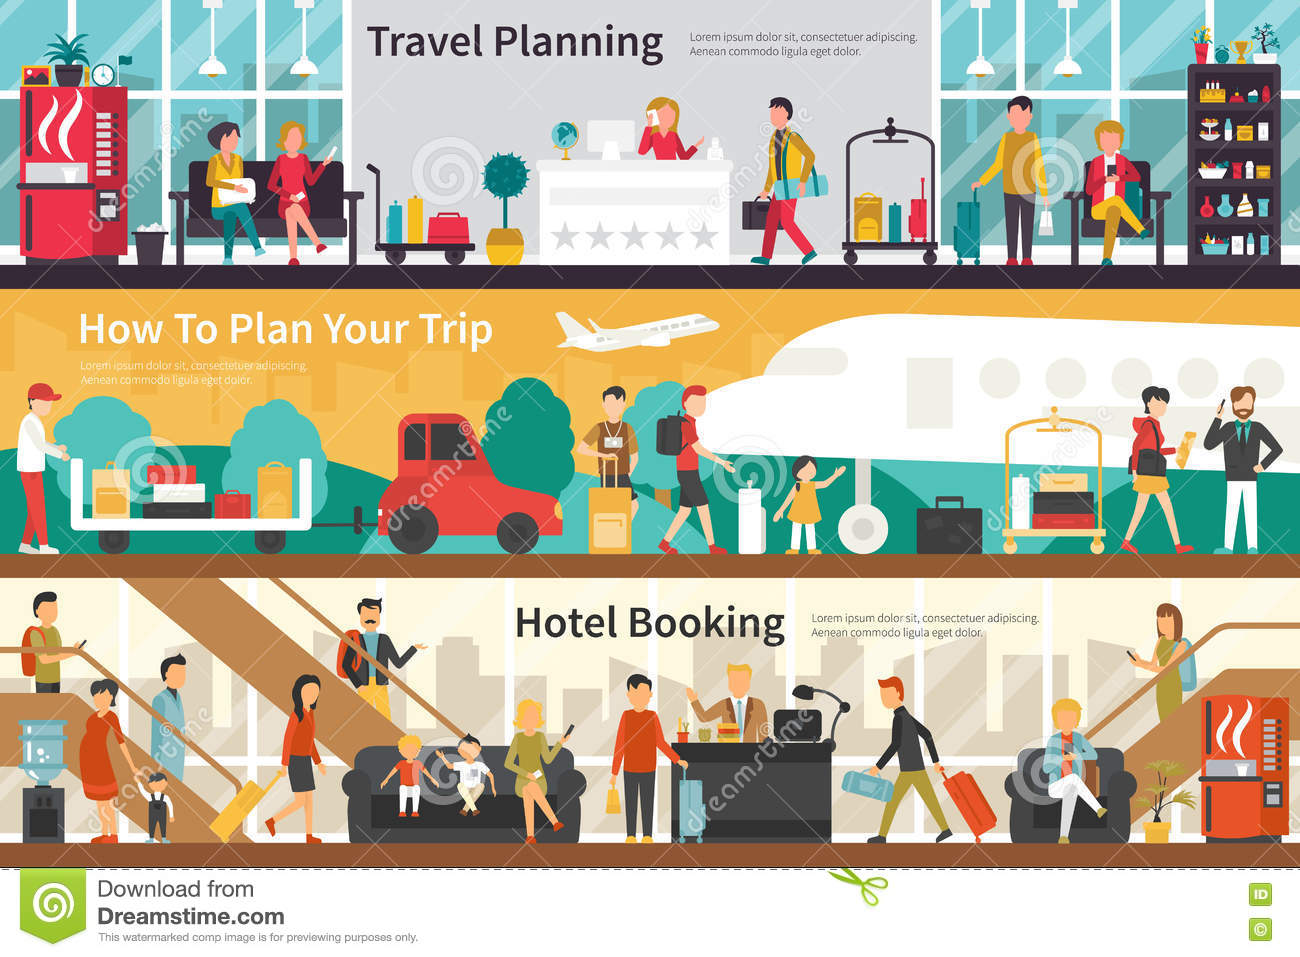 travel planning how to plan your trip hotel booking flat interior travel planning how to plan your trip hotel booking flat interior outdoor concept web